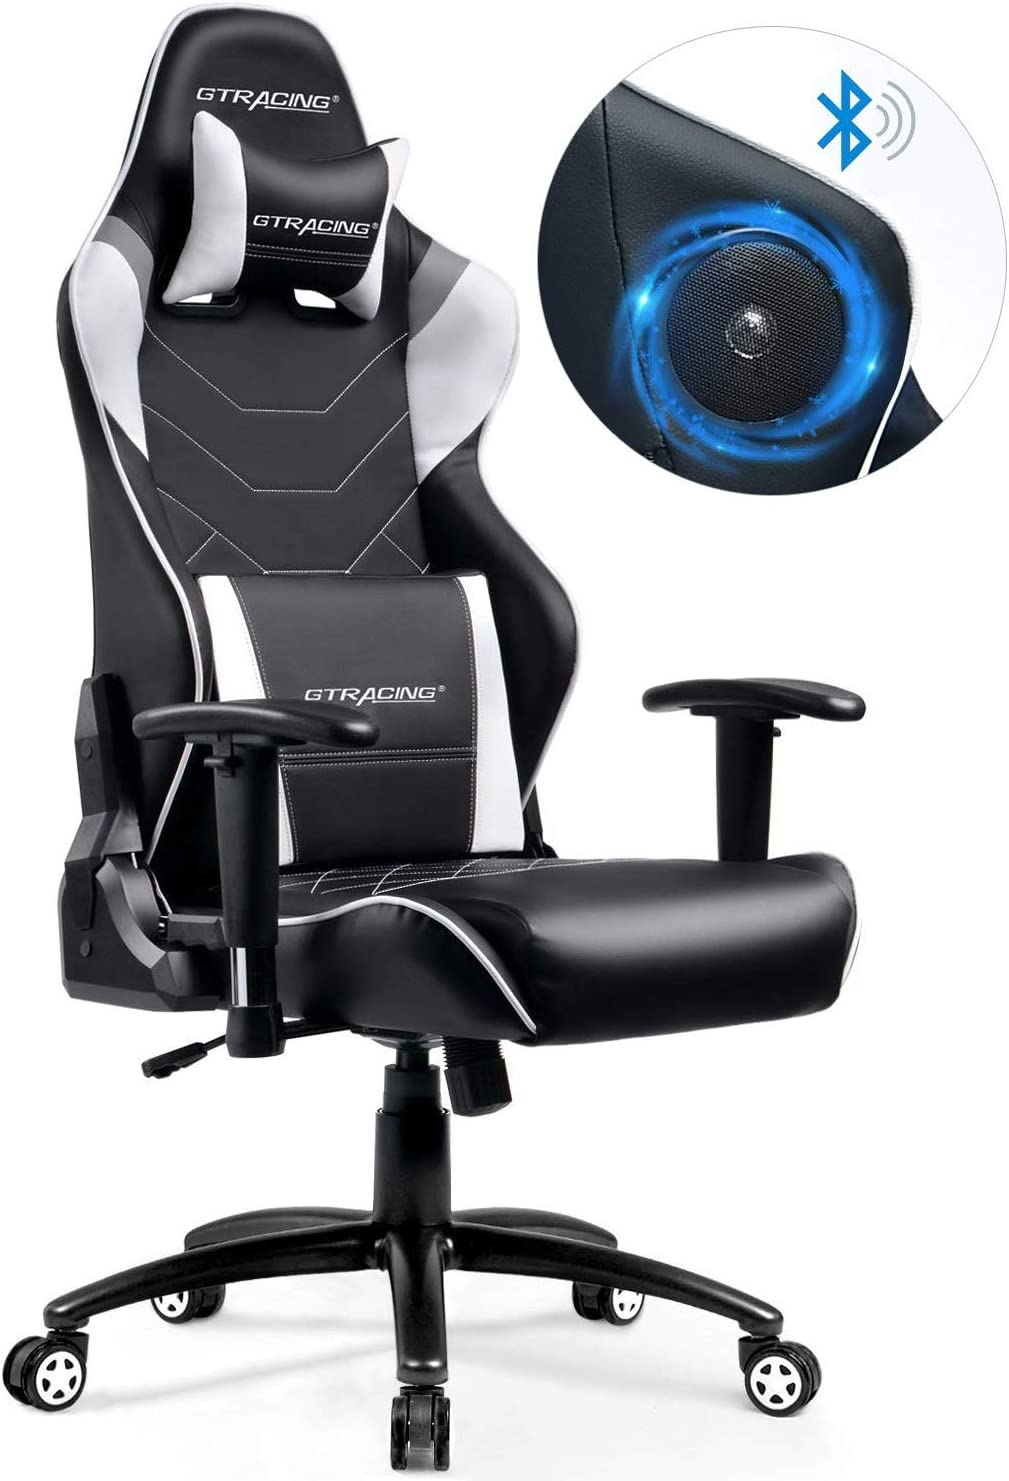 Top 10 Best Xbox One Gaming Chair 2020 (List & Reviews)